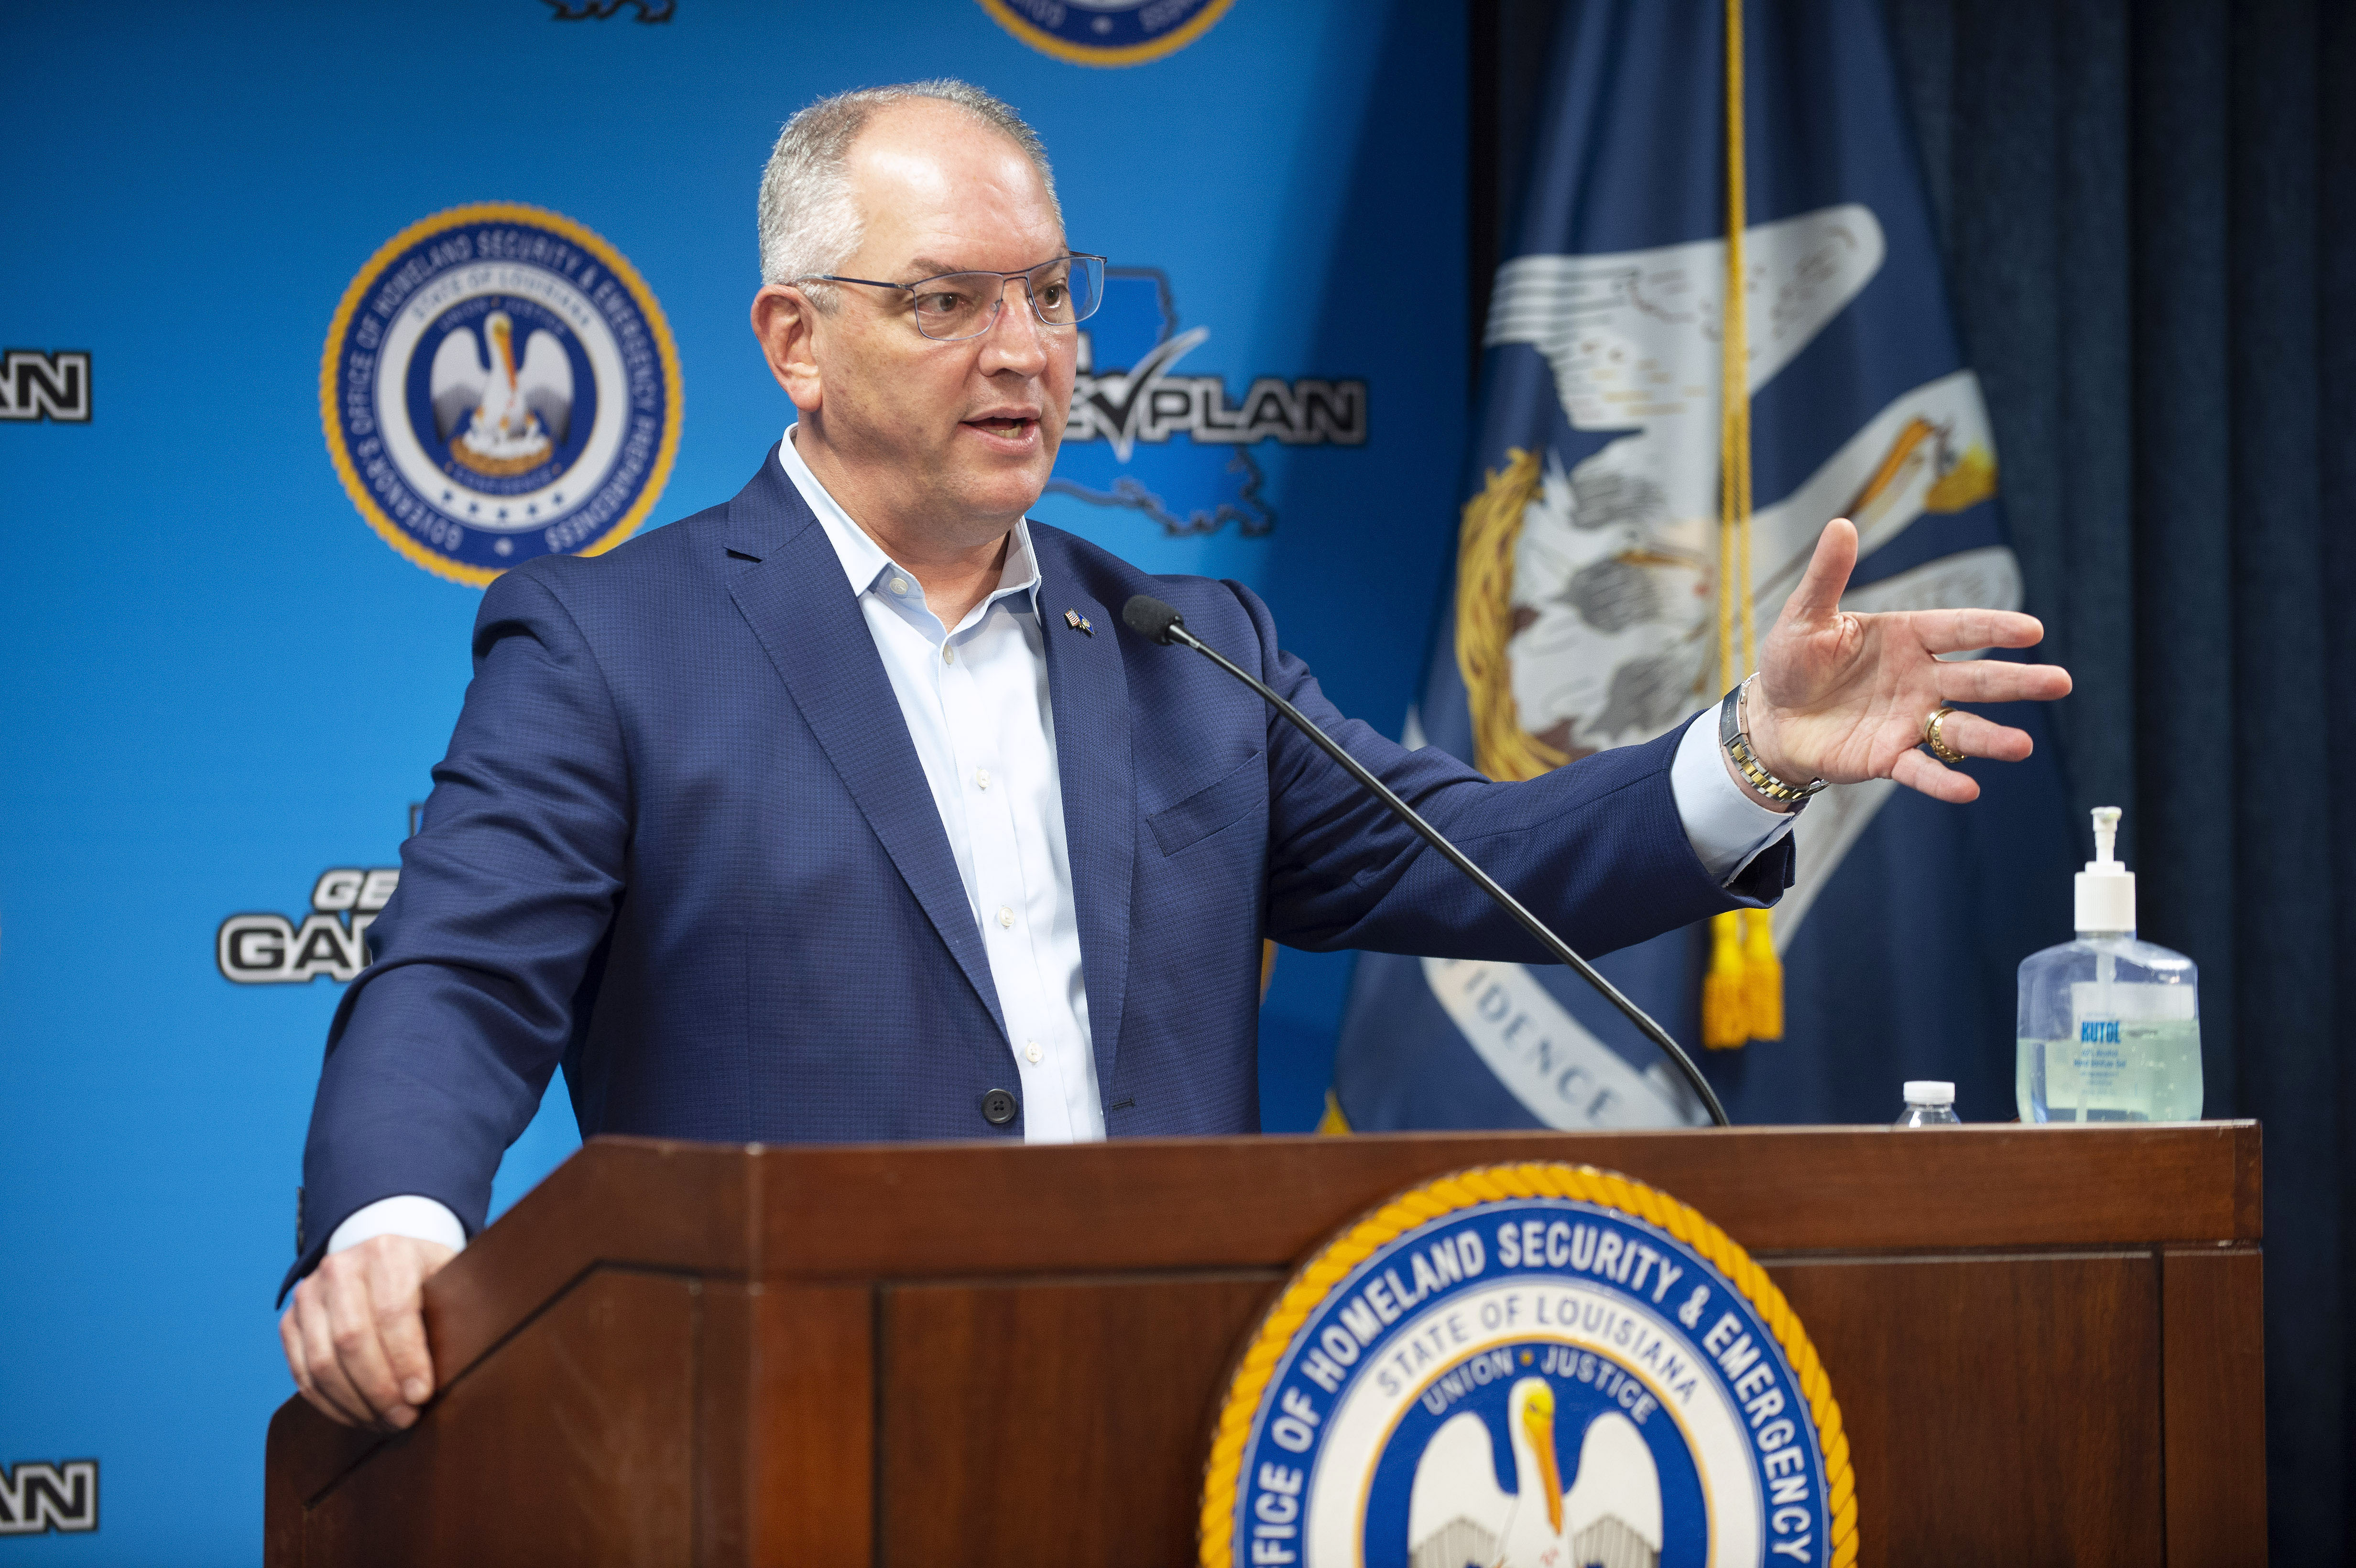 Louisiana Gov. John Bel Edwards speaks during a news conference in Baton Rouge, Louisiana, on June 8.